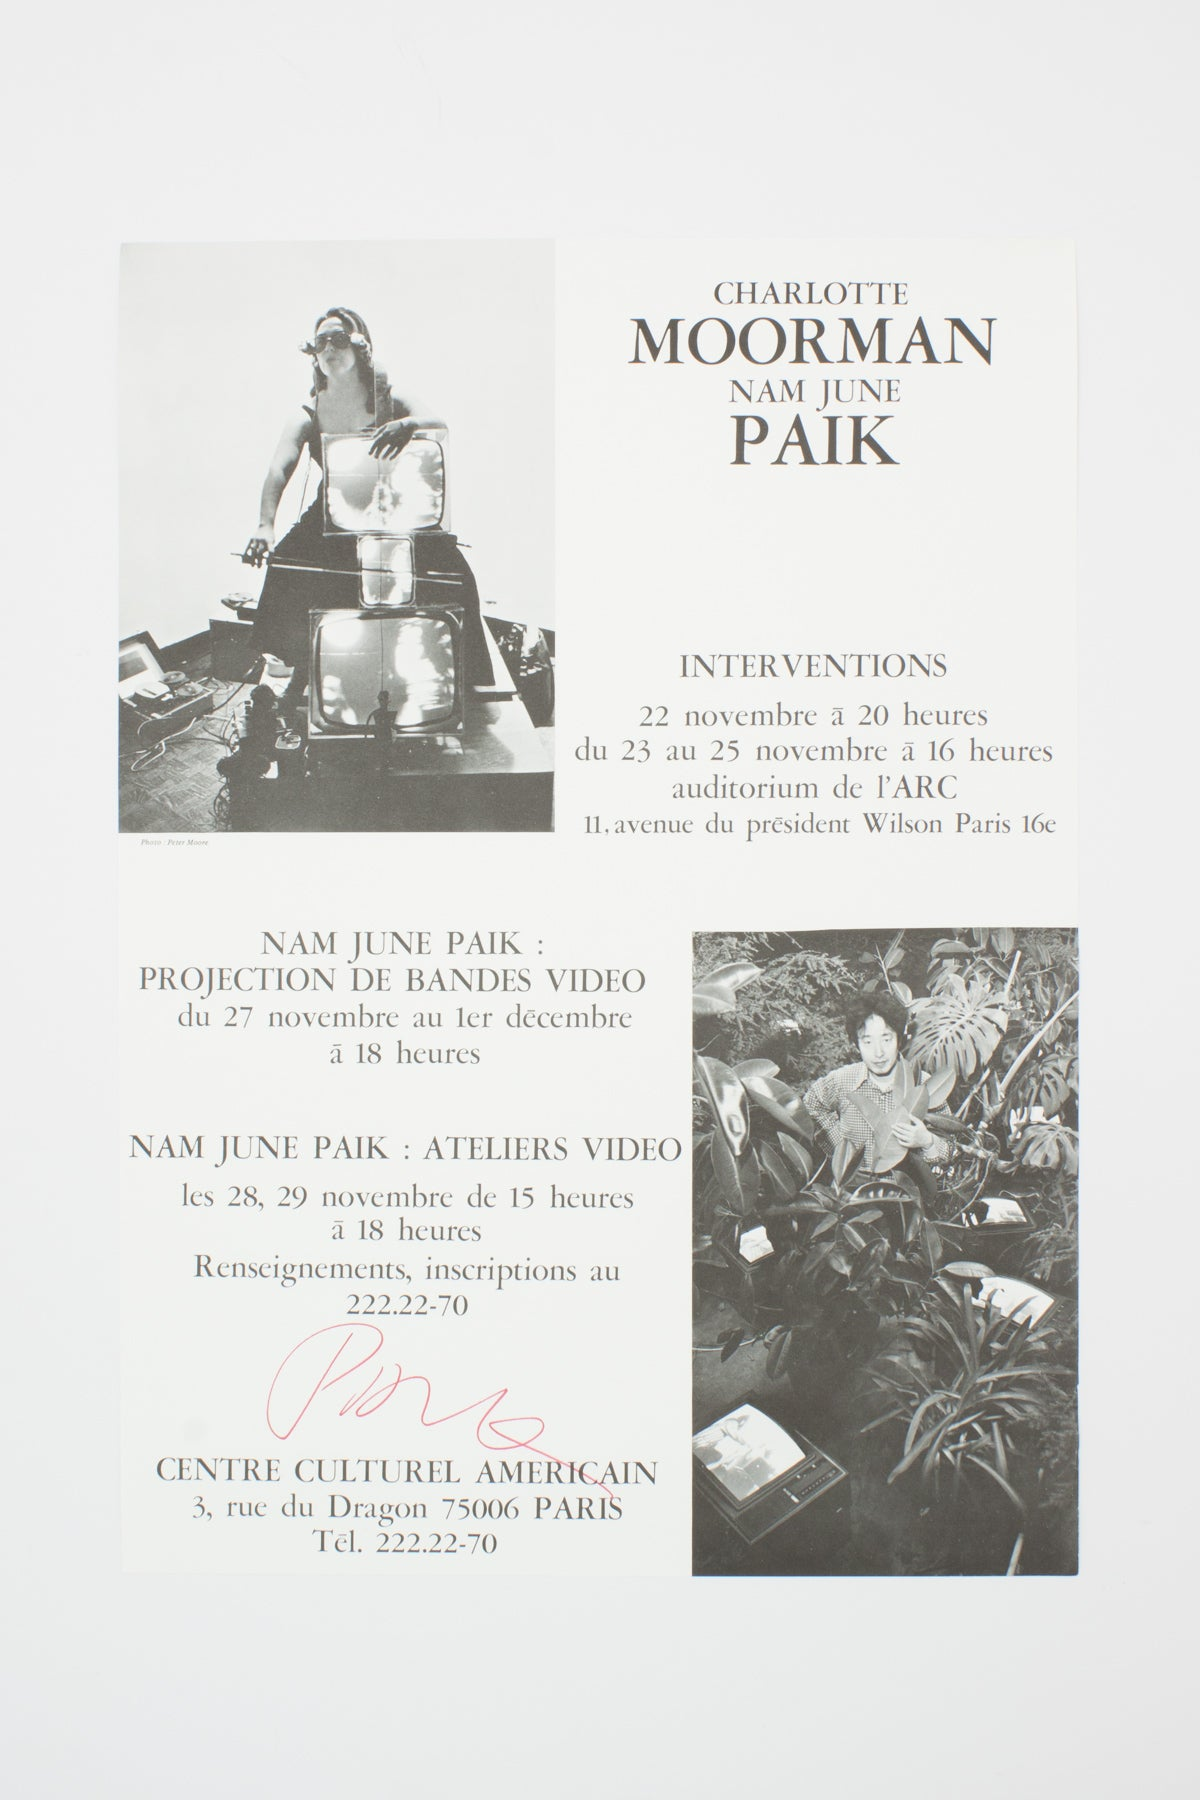 Interventions - Nam June Paik & Charlotte Moorman